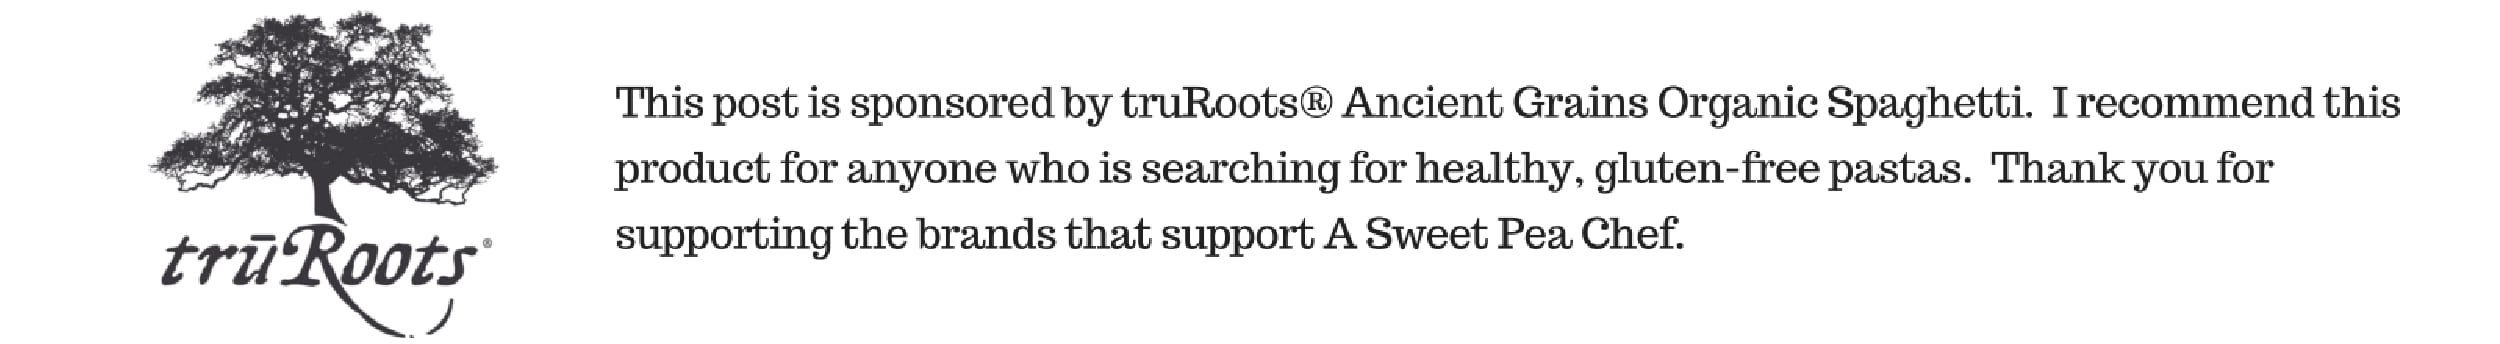 Sponsored By truRoots